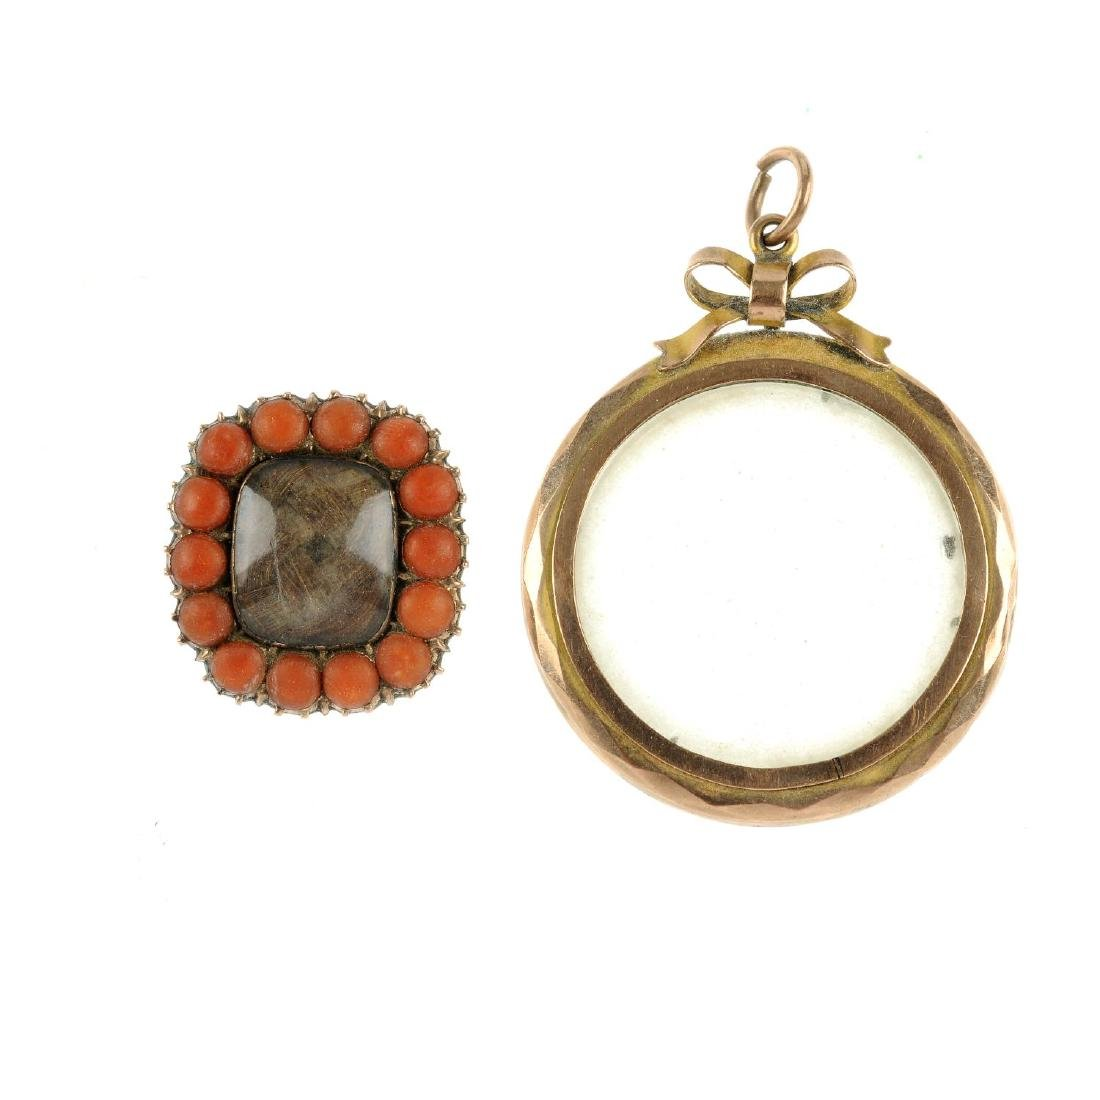 A mid Victorian coral memorial brooch and an Edwardian